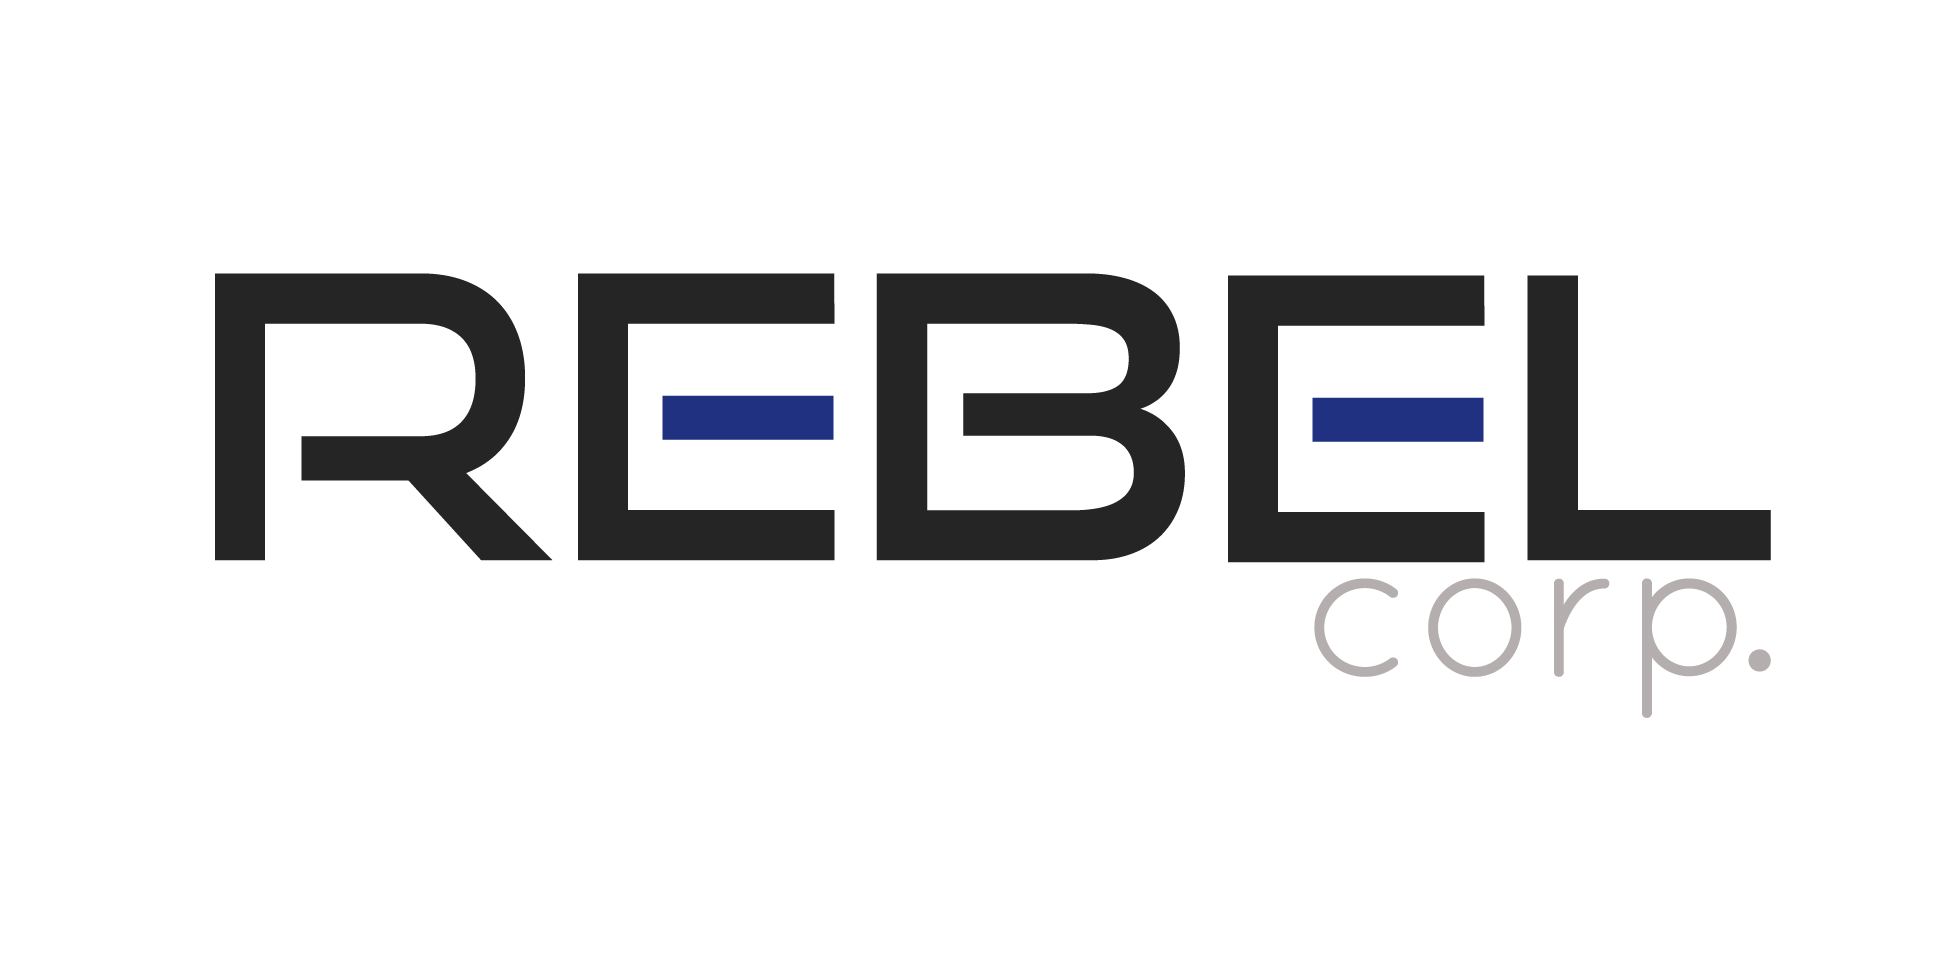 Rebel Corp Global Top Rated Company on 10Hostings